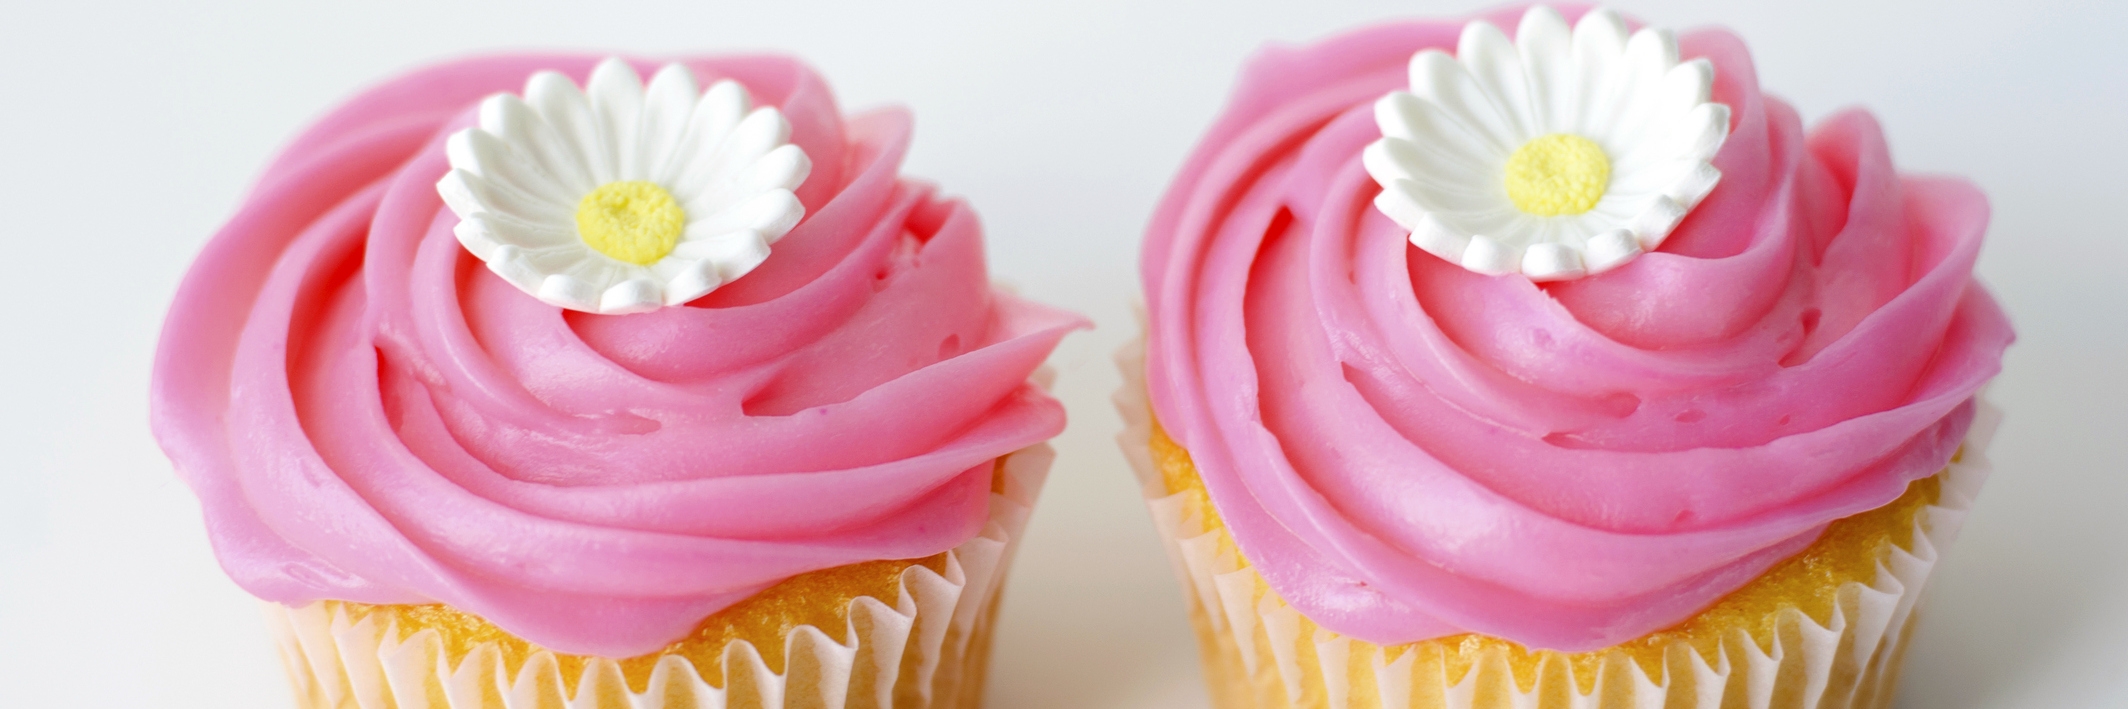 two Pink cupcakes